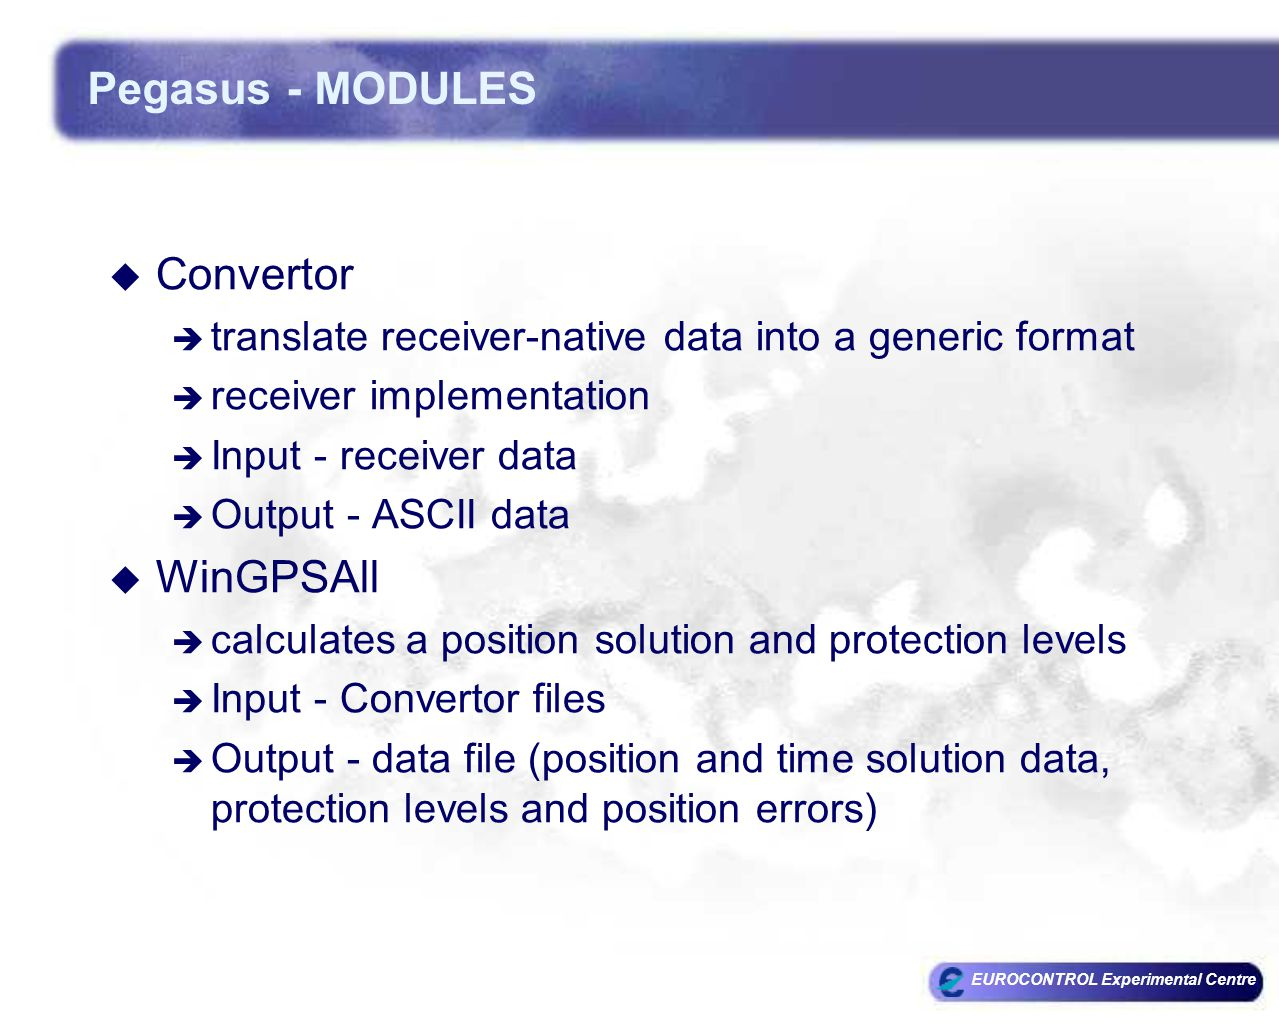 EUROCONTROL Experimental Centre Pegasus - MODULES  Convertor  translate receiver-native data into a generic format  receiver implementation  Input - receiver data  Output - ASCII data  WinGPSAll  calculates a position solution and protection levels  Input - Convertor files  Output - data file (position and time solution data, protection levels and position errors)